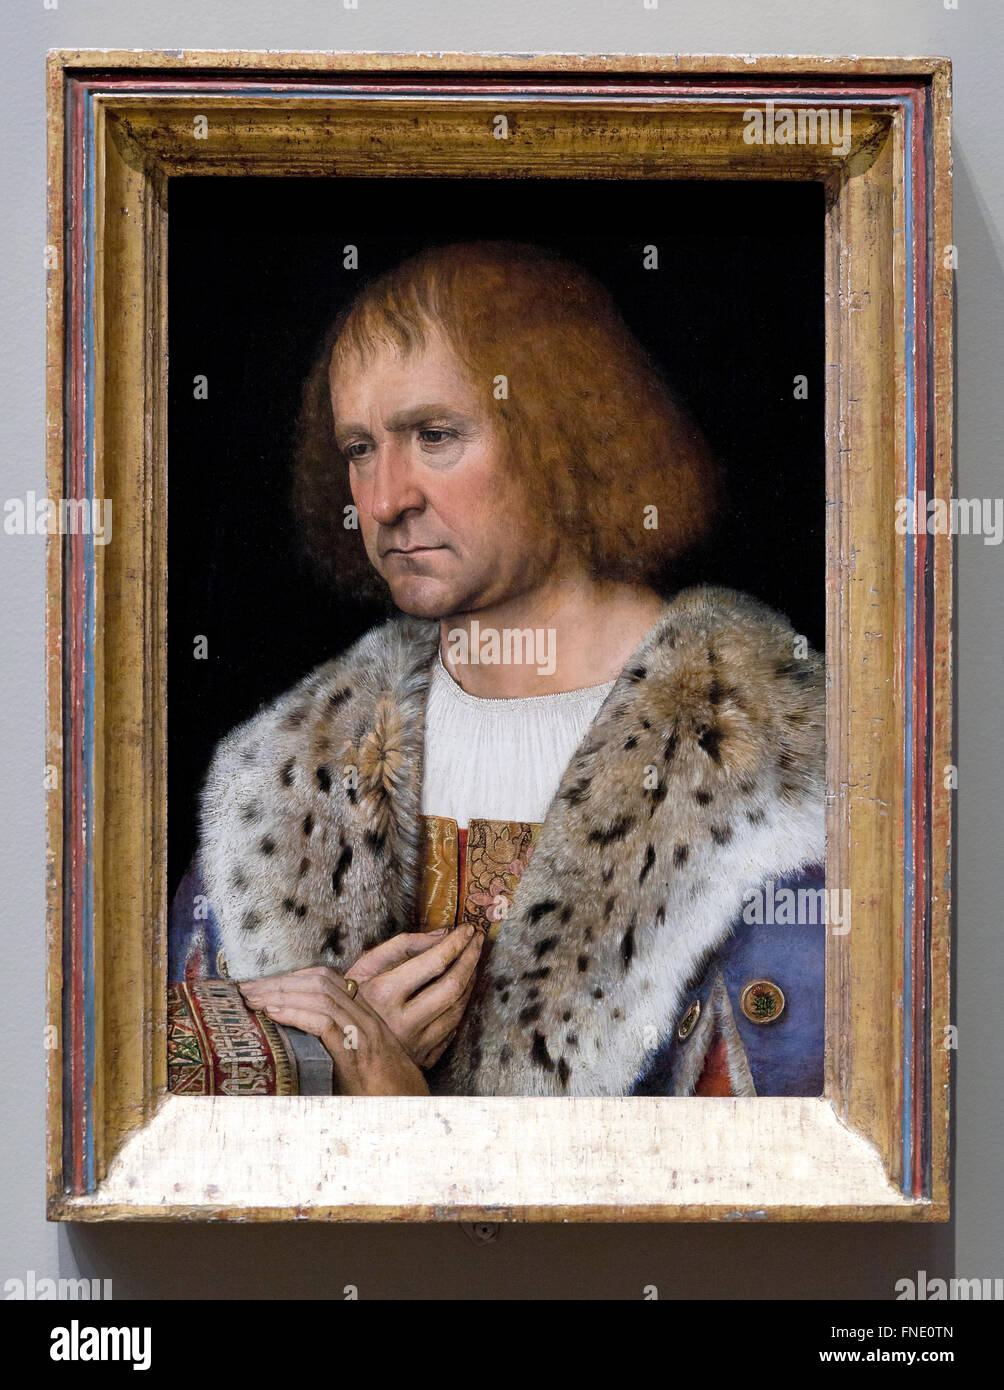 Portrait von Diego de Guevara von Michel sittow, circa 1515 - Smithsonian National Gallery, Washington, Dc, USA Stockbild